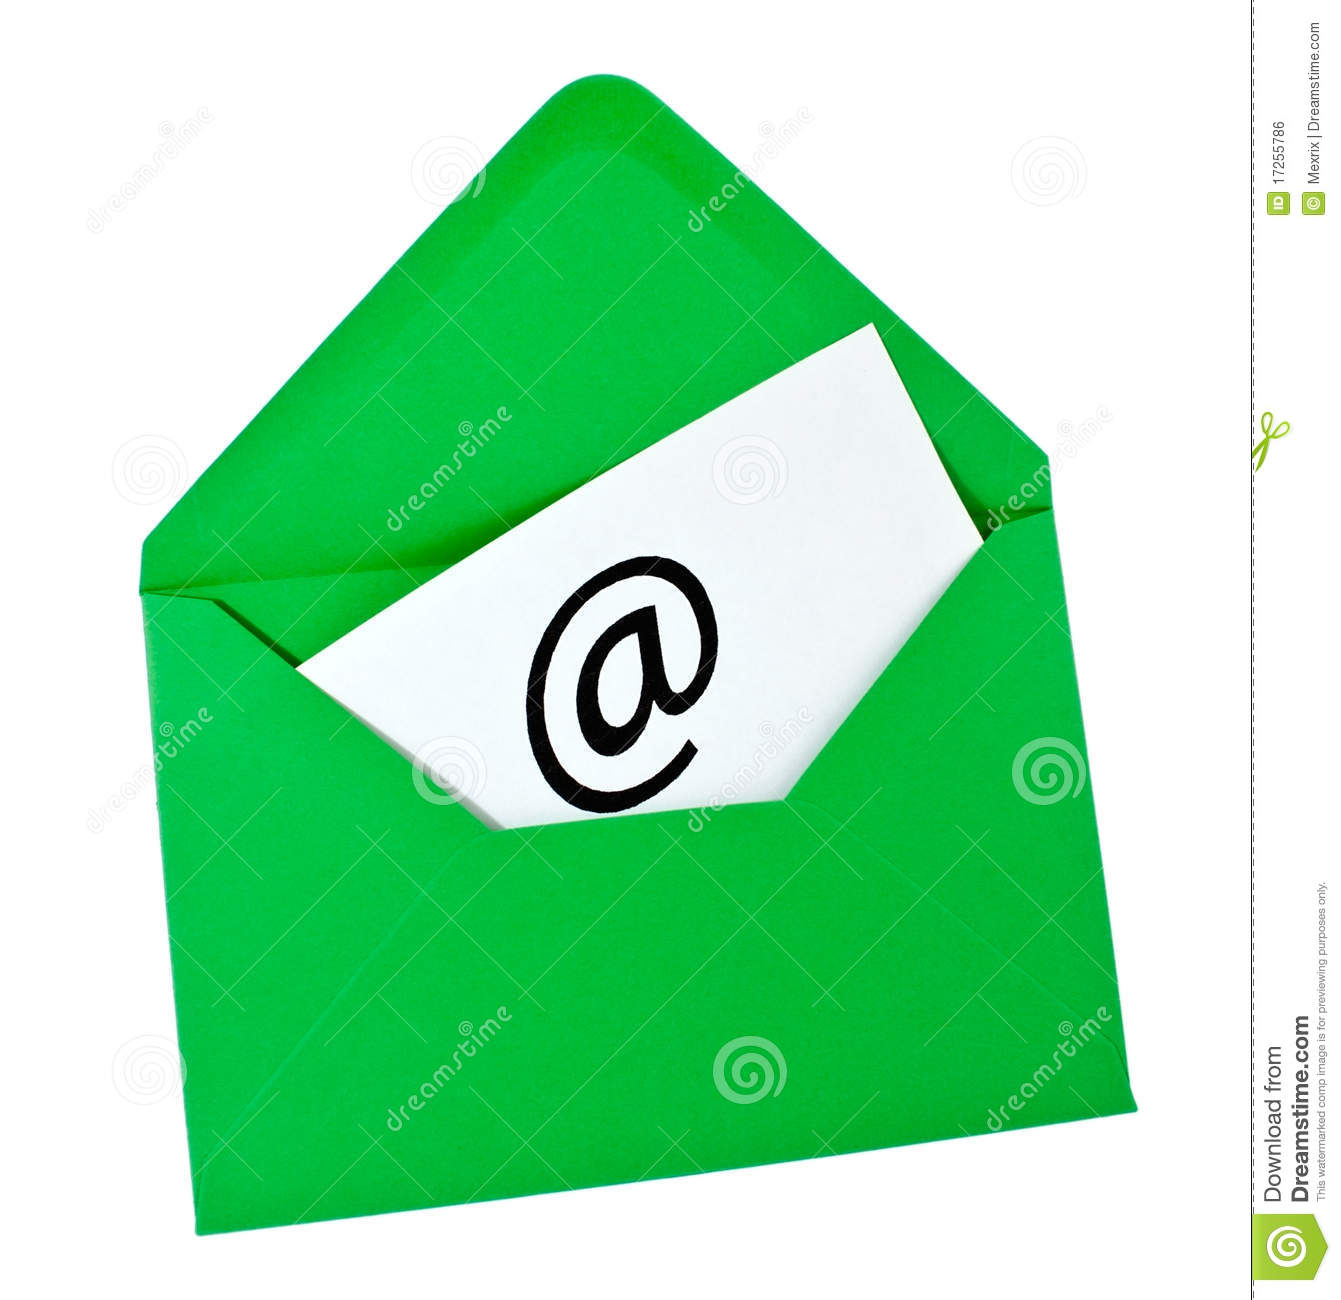 Italian handwritten postcard letter stock photo image 39254147 - Green Envelope With Email Symbol Royalty Free Stock Image Image